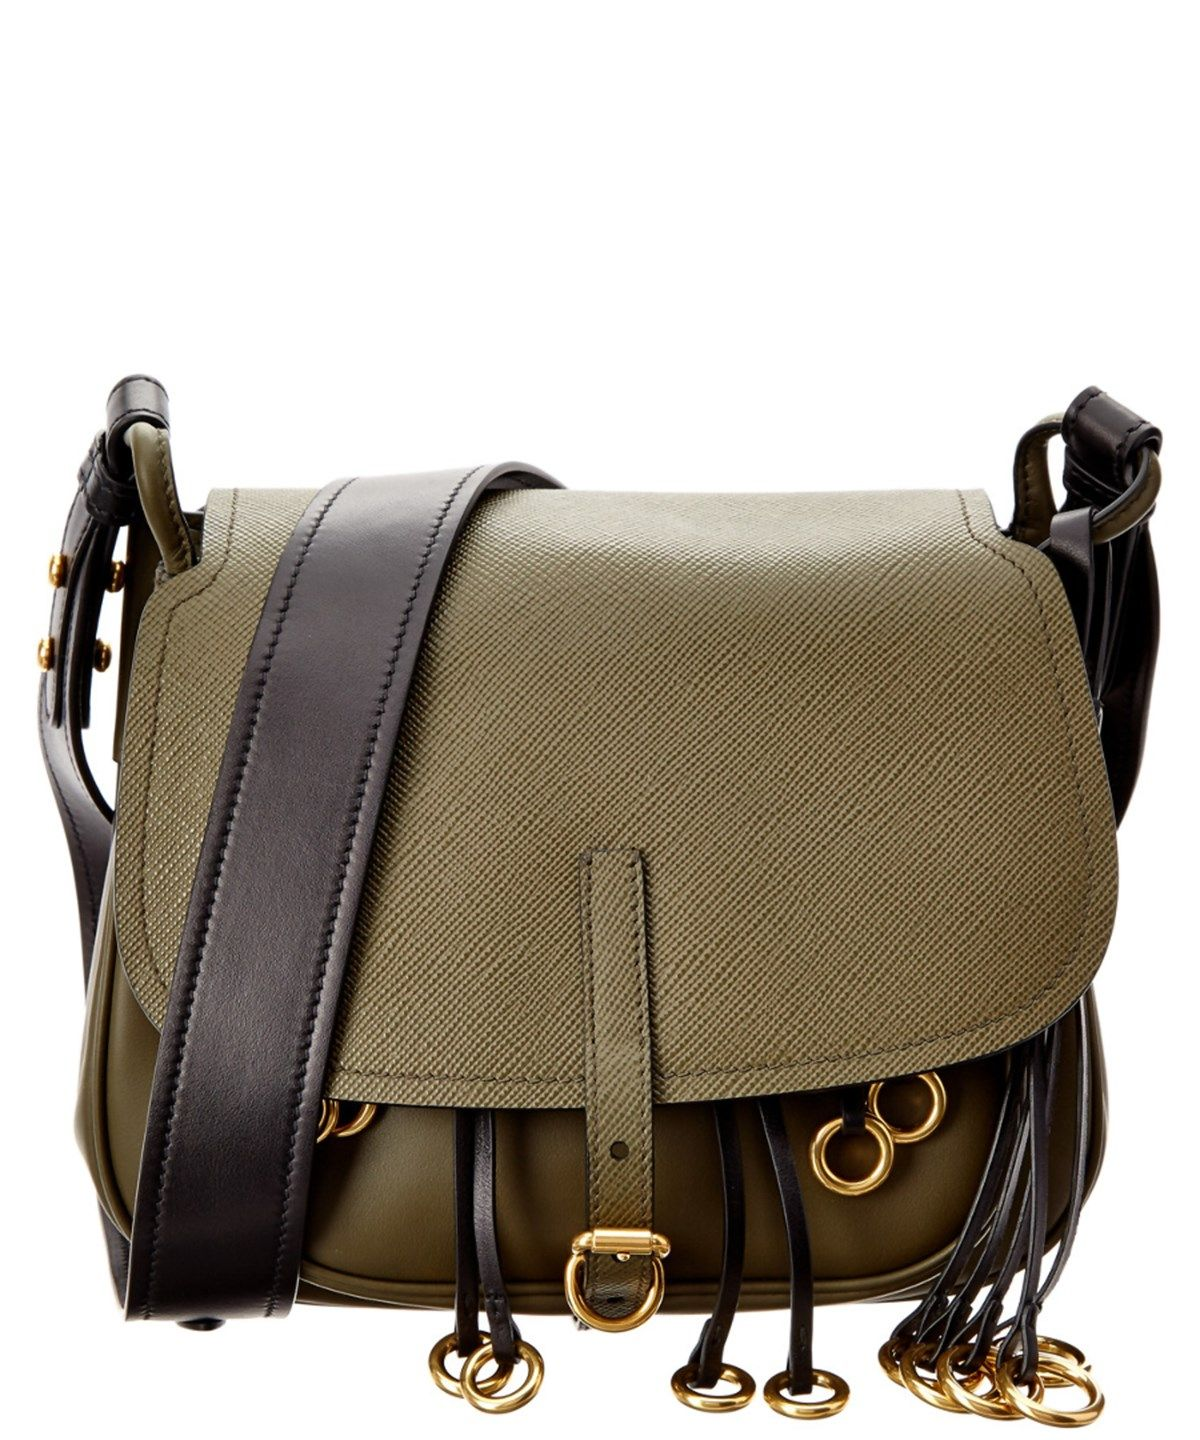 a232d9e6cb19 PRADA PRADA CORSAIRE CALF LEATHER SHOULDER BAG'. #prada #bags #shoulder bags  #leather #lining #